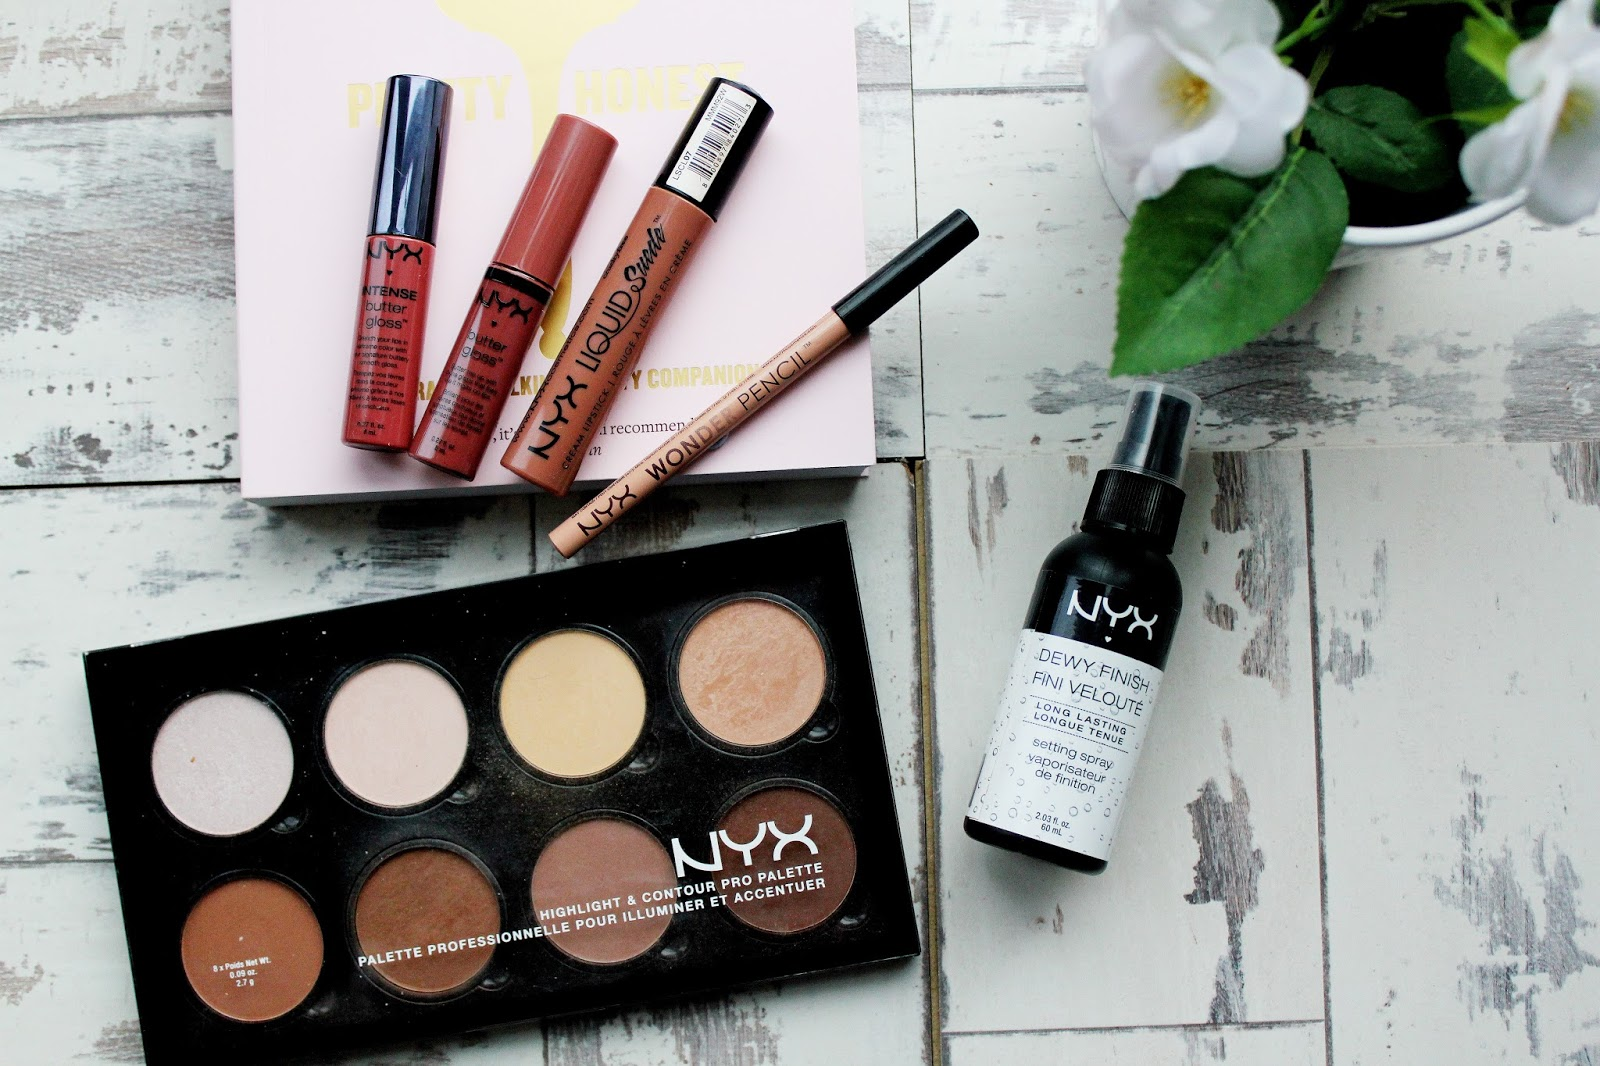 NYX is a company whose products can be found anywhere from their online website, to CVS to Target that are absolute must haves! Here is a list of the 10 best makeup products from NYX Cosmetics that every college girl needs to have in her makeup bag!